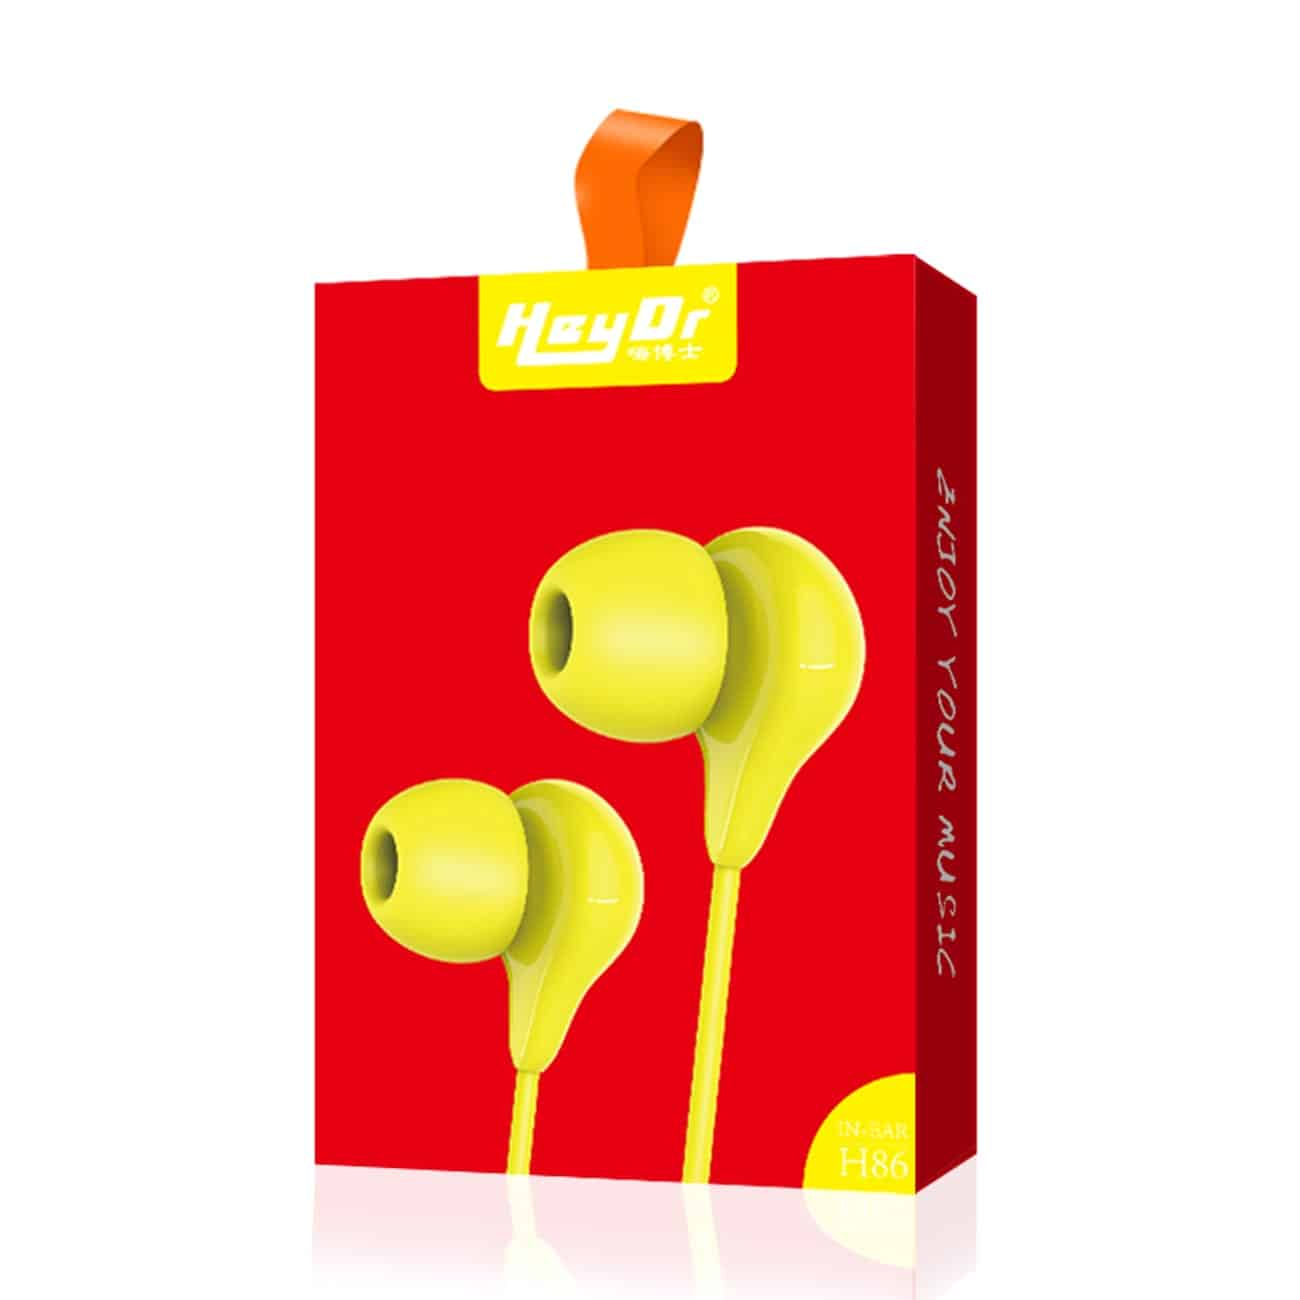 Hey Dr H86 In-Ear headphone in Yellow